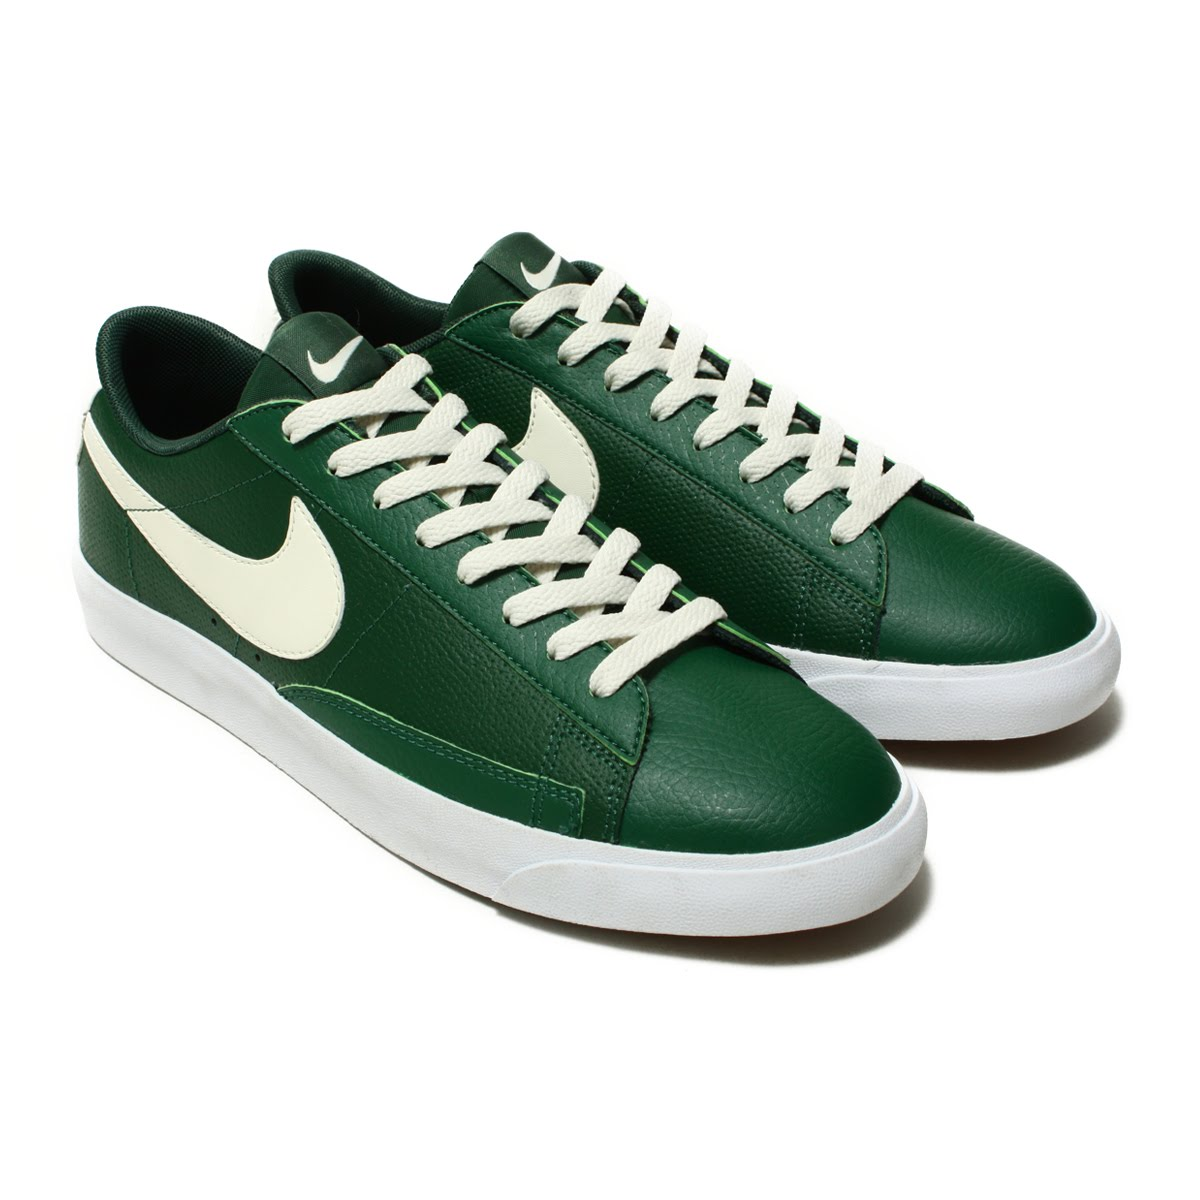 f1013251f41 ... The design which is Aiko Nic where I finished the Nike blazer Lorre  semen shoes with ...